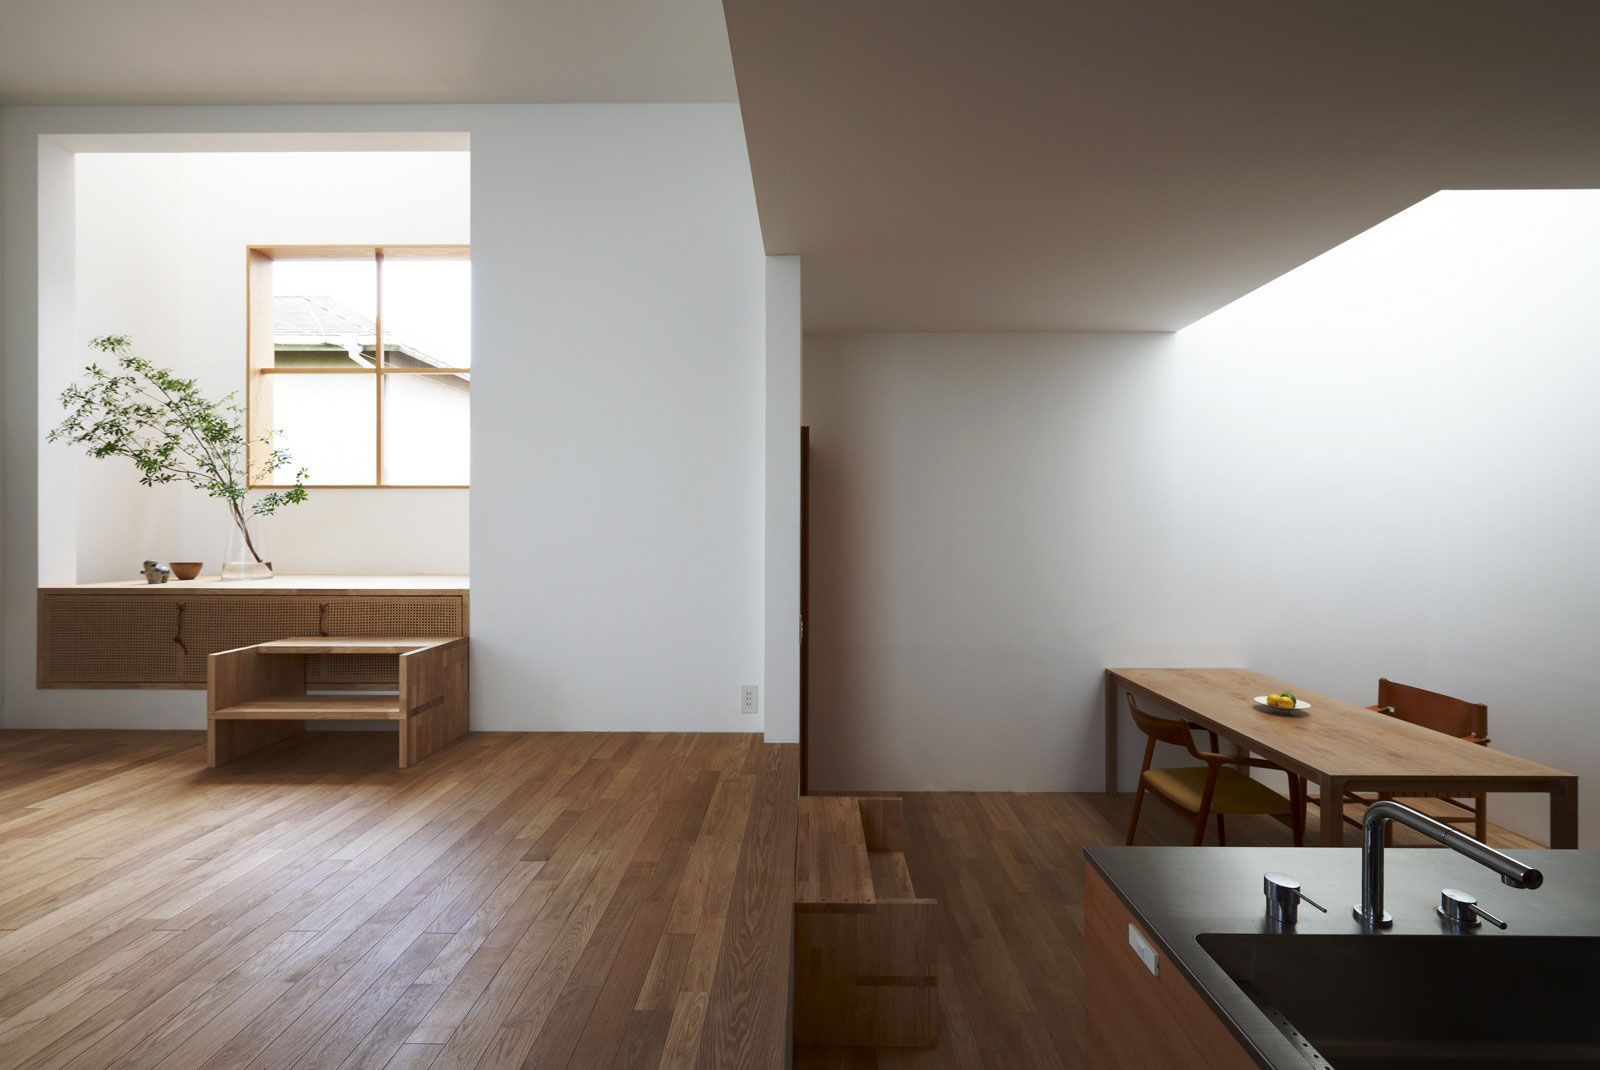 Interior, Japan Eco Friendly House with Maximum Comfort: Japanese ...